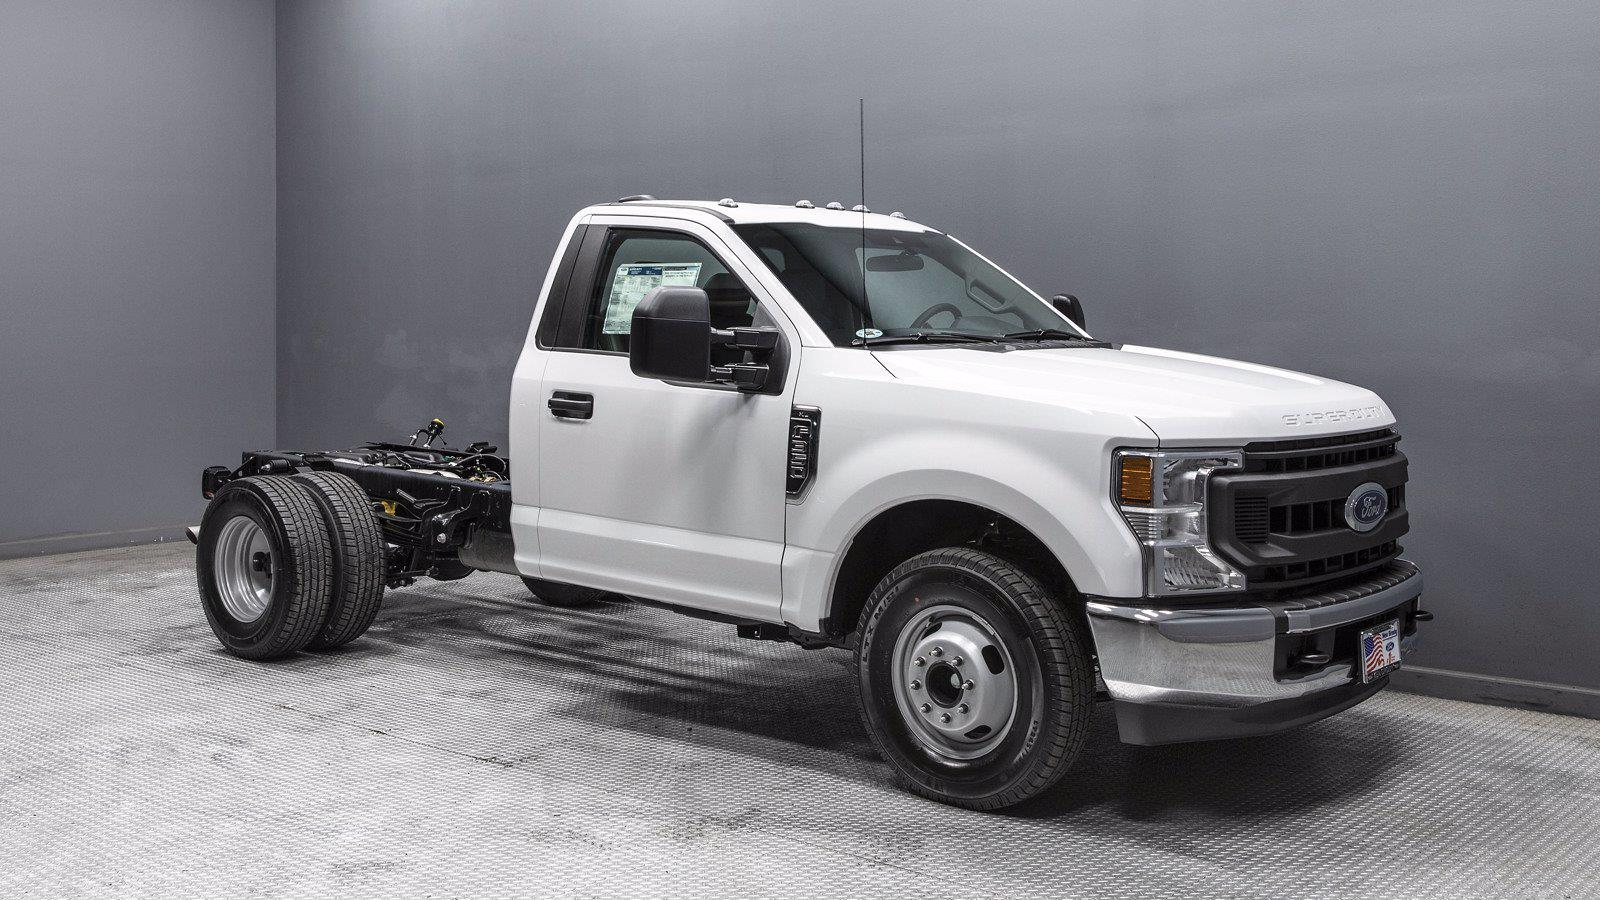 2021 Ford F-350 Regular Cab DRW 4x2, Cab Chassis #210756 - photo 1